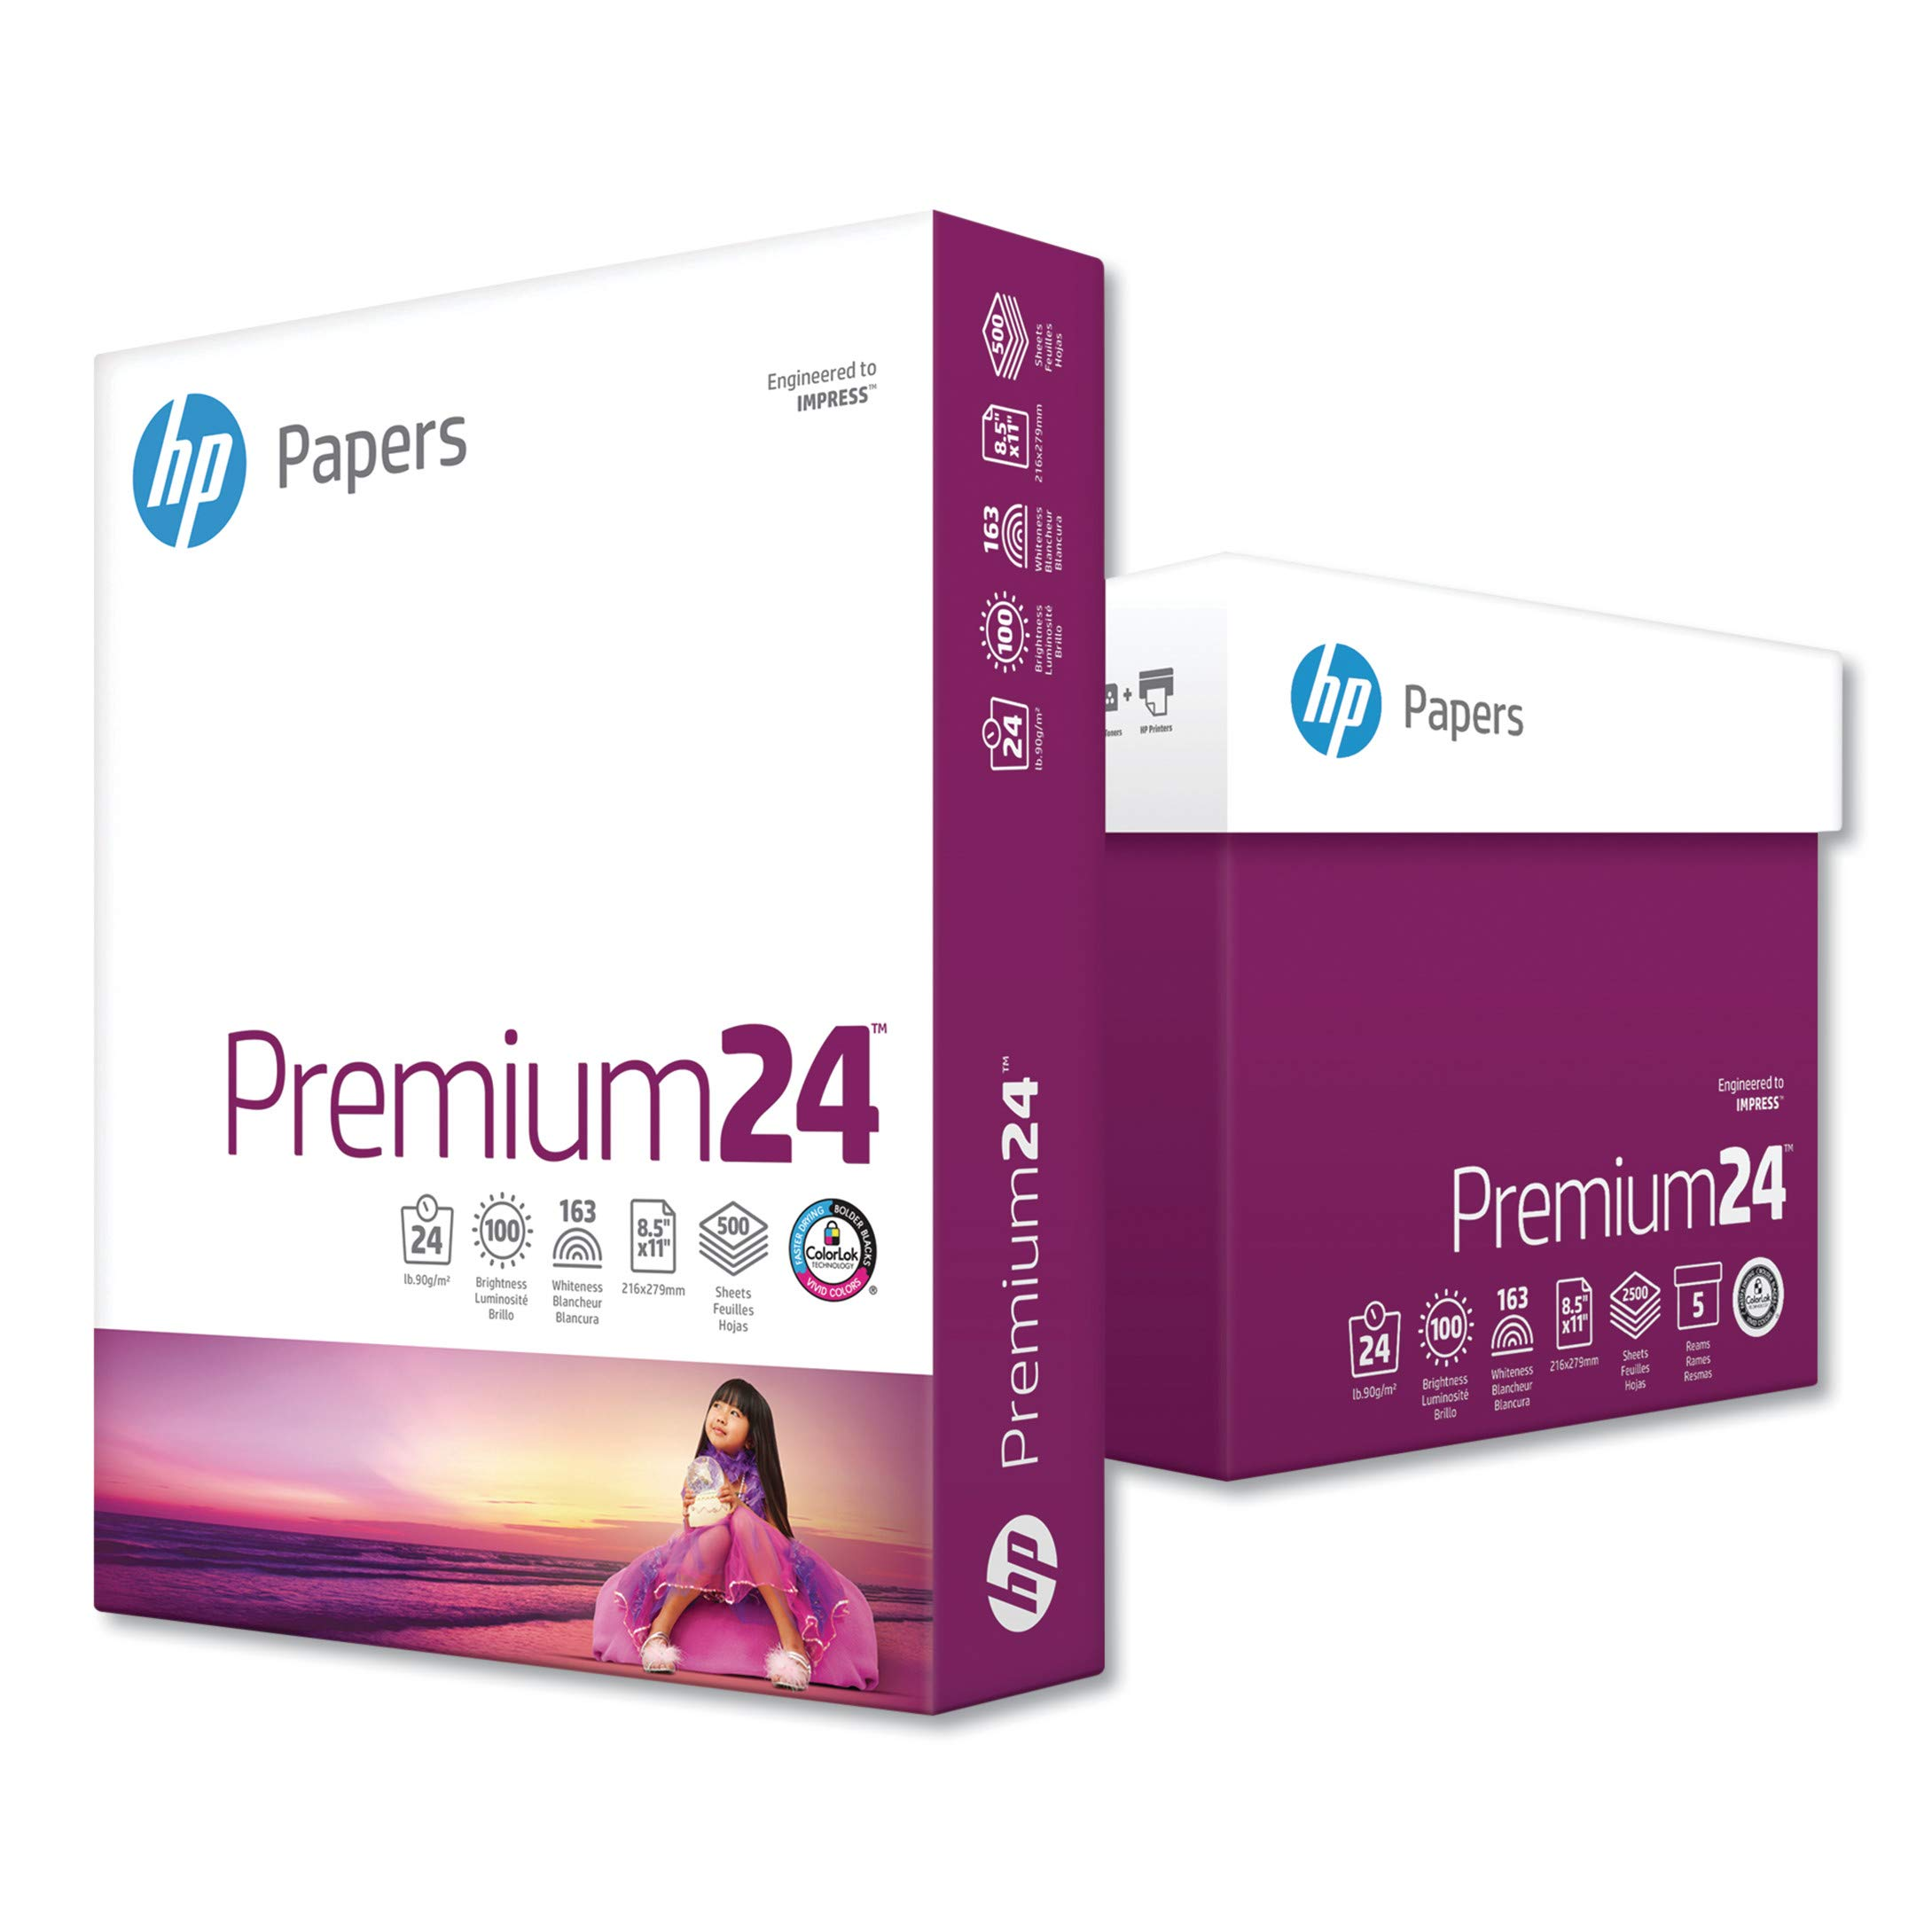 HP, Premium24 Paper, HEW115300, 98 Bright, 24pound, 8.5 x 11, Ultra White, 500 Sheets/Ream, 5 Reams/Carton, Sold As 1 Carton by HP